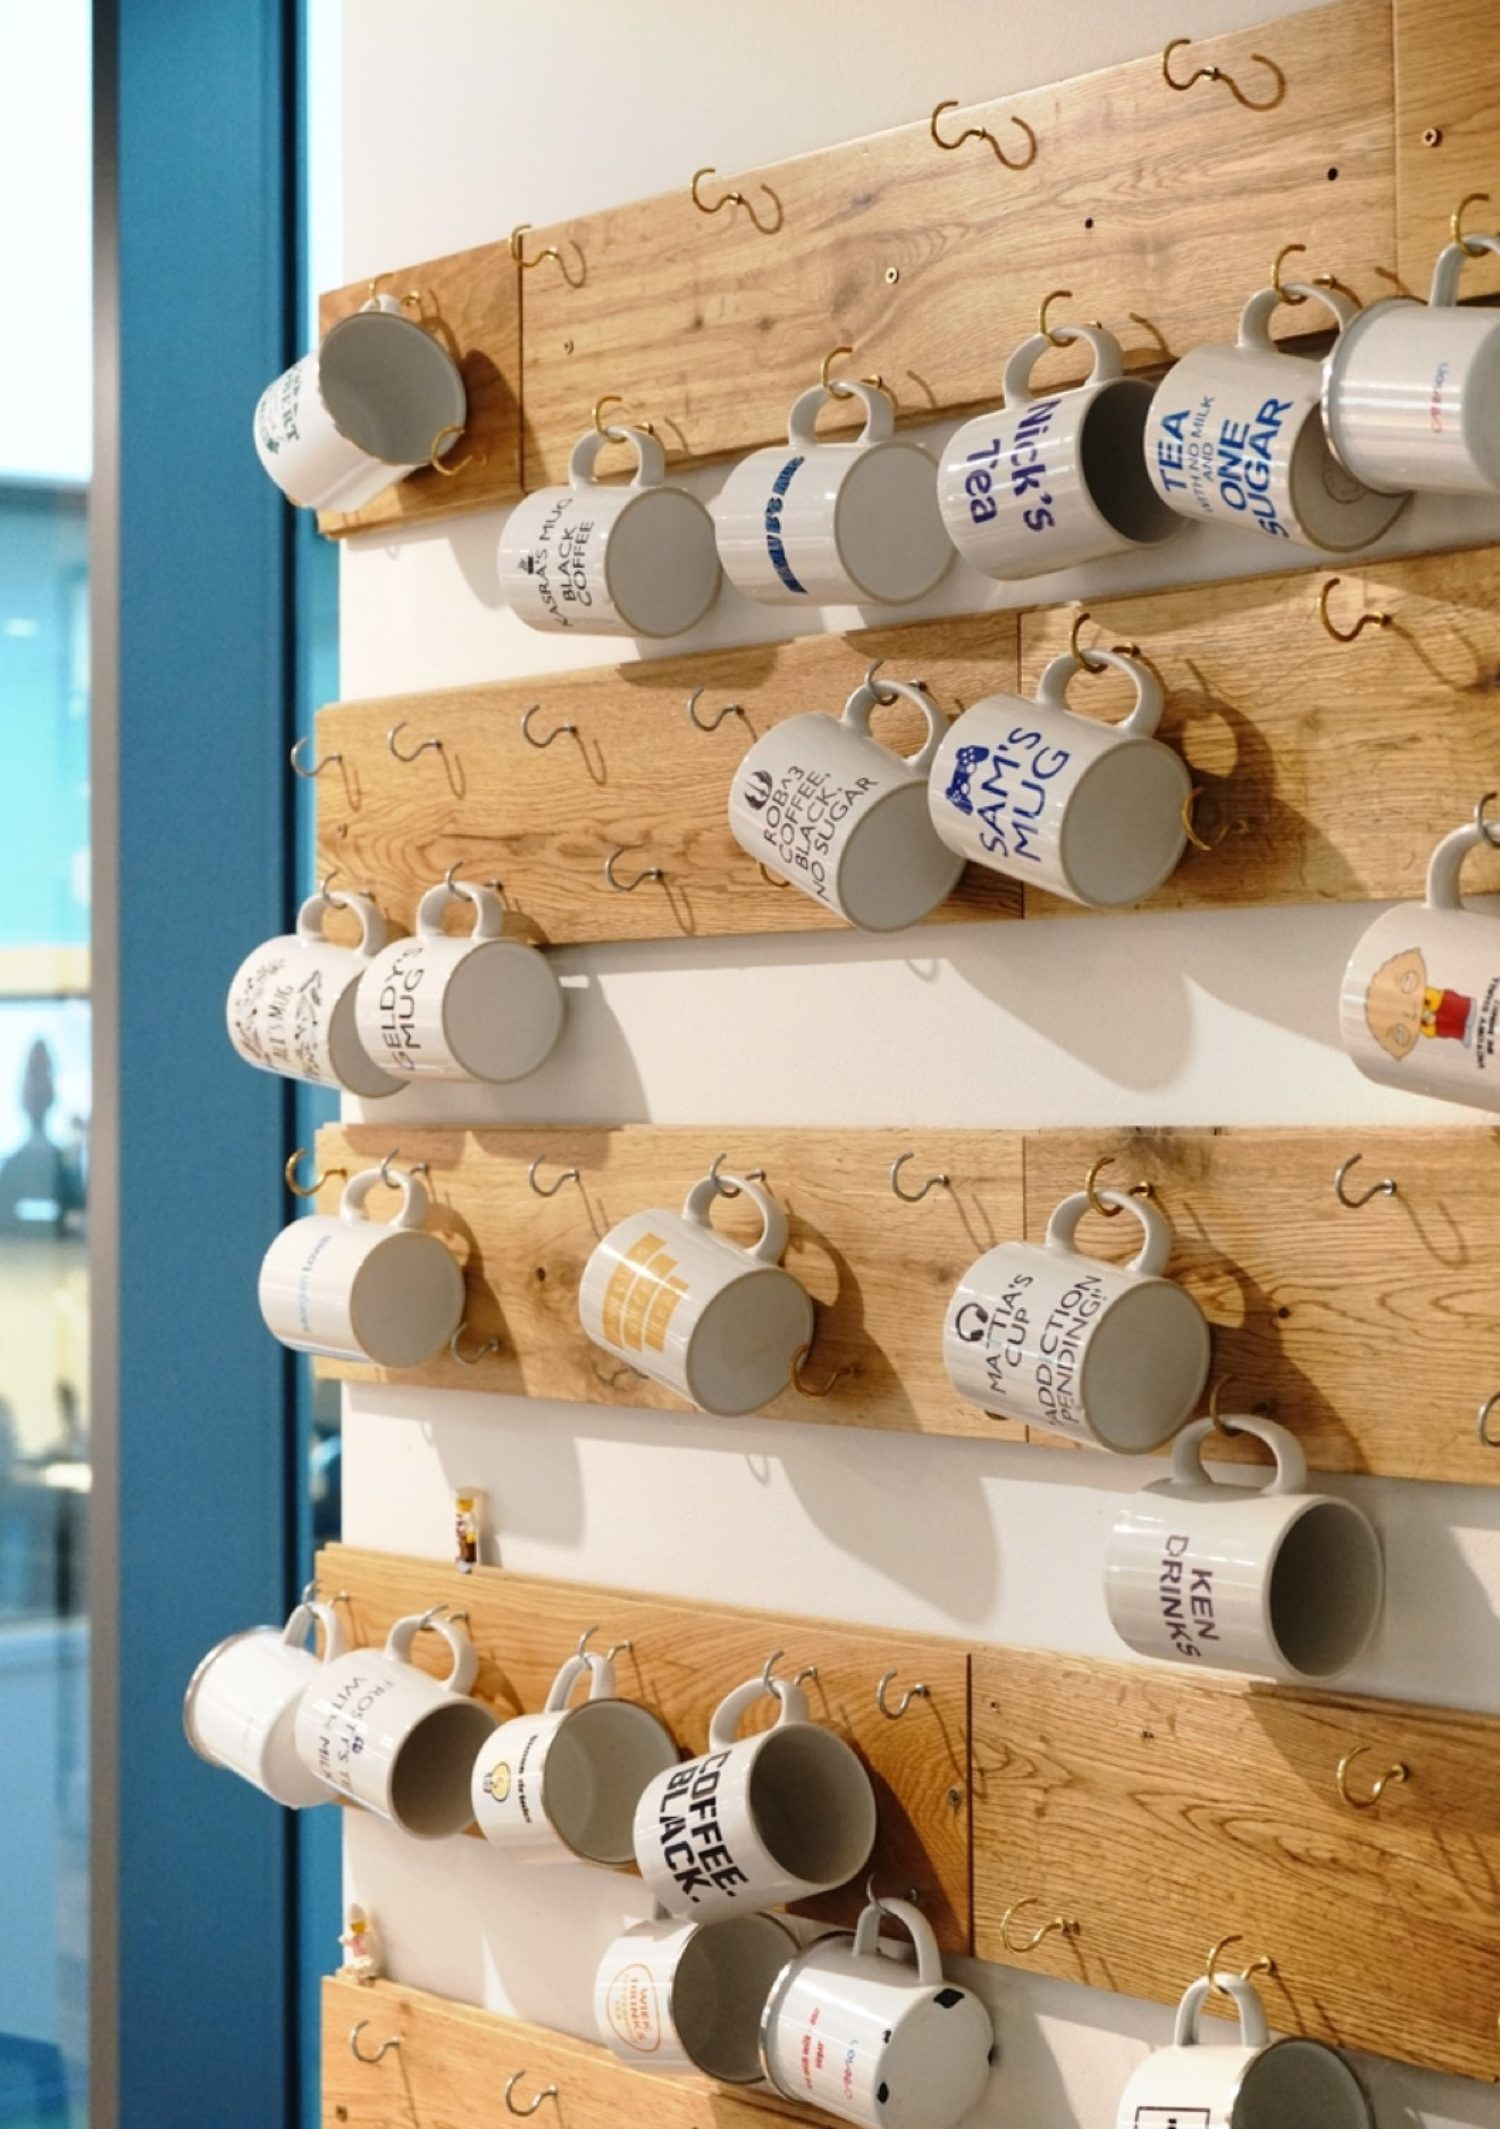 Personalised hanging mug walls in an office